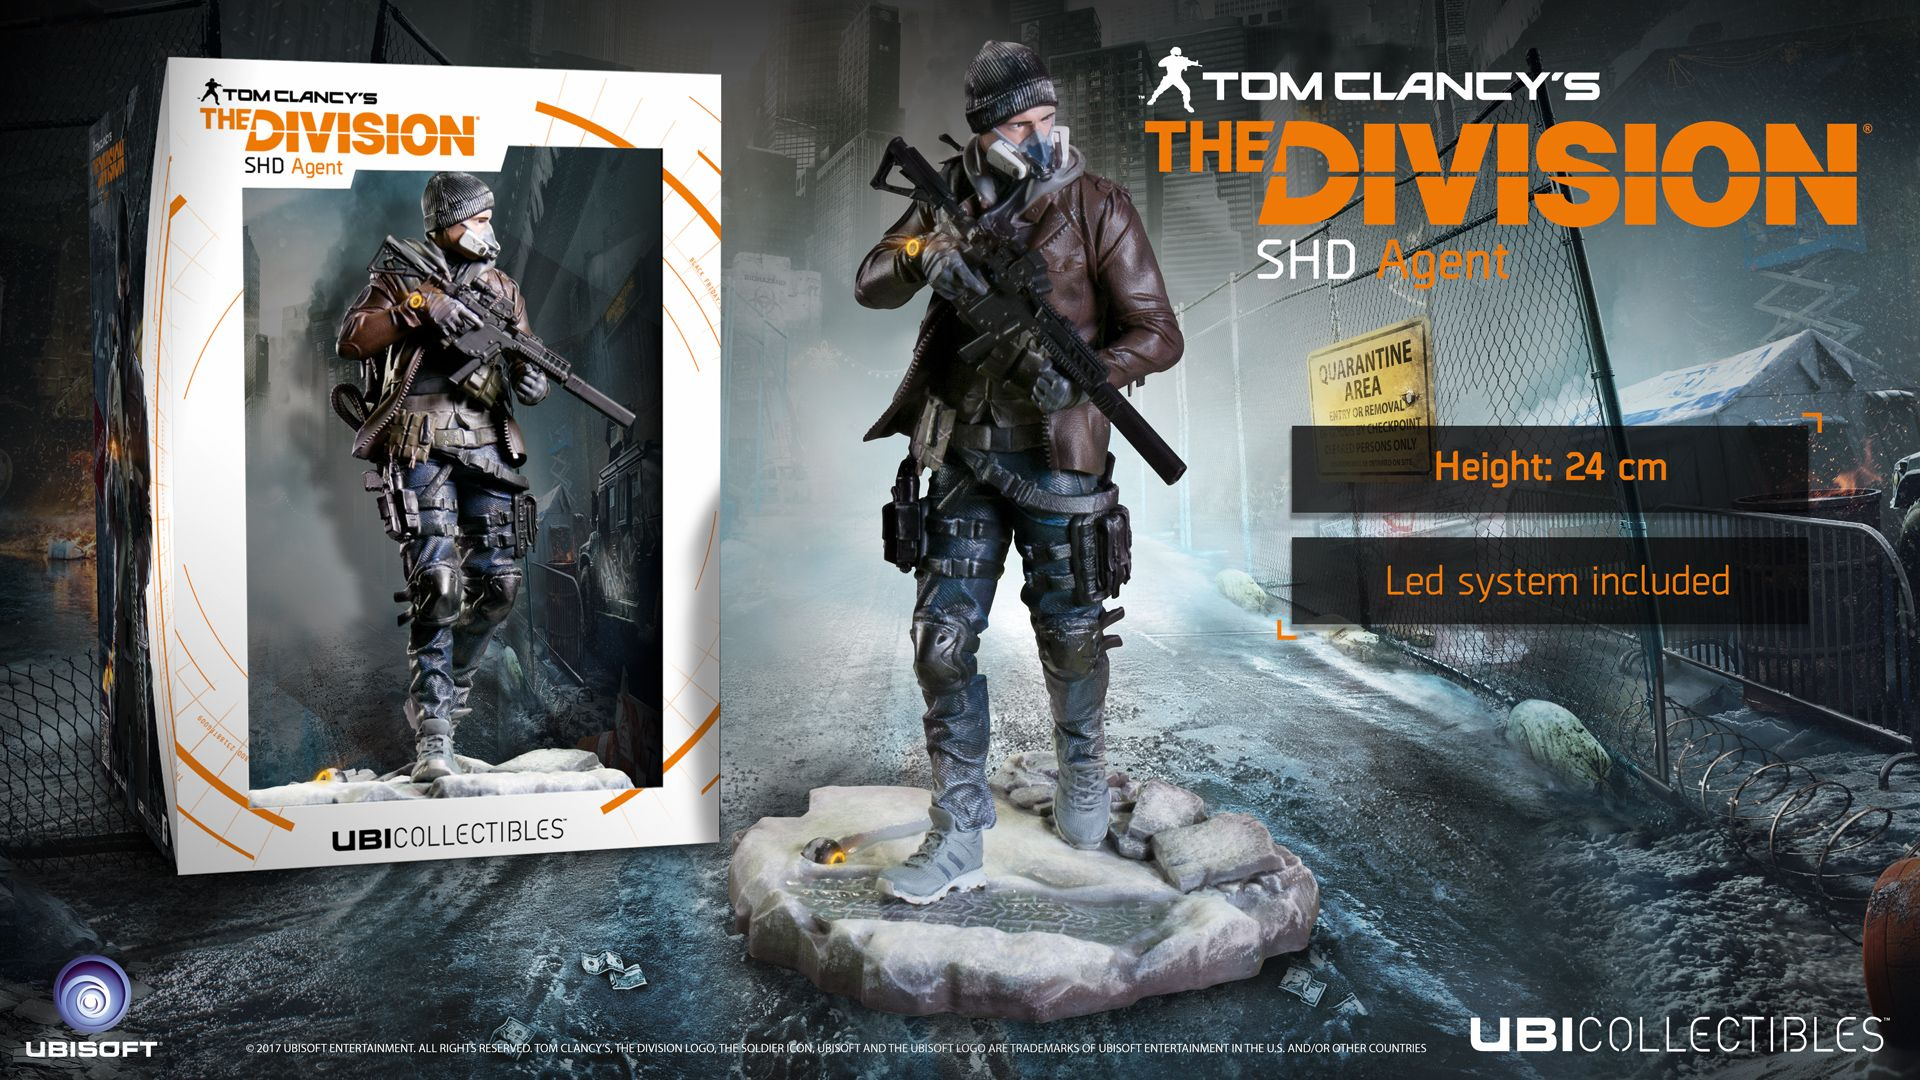 tom clancys the division iphone wallpaper hd games wallpaper | hd